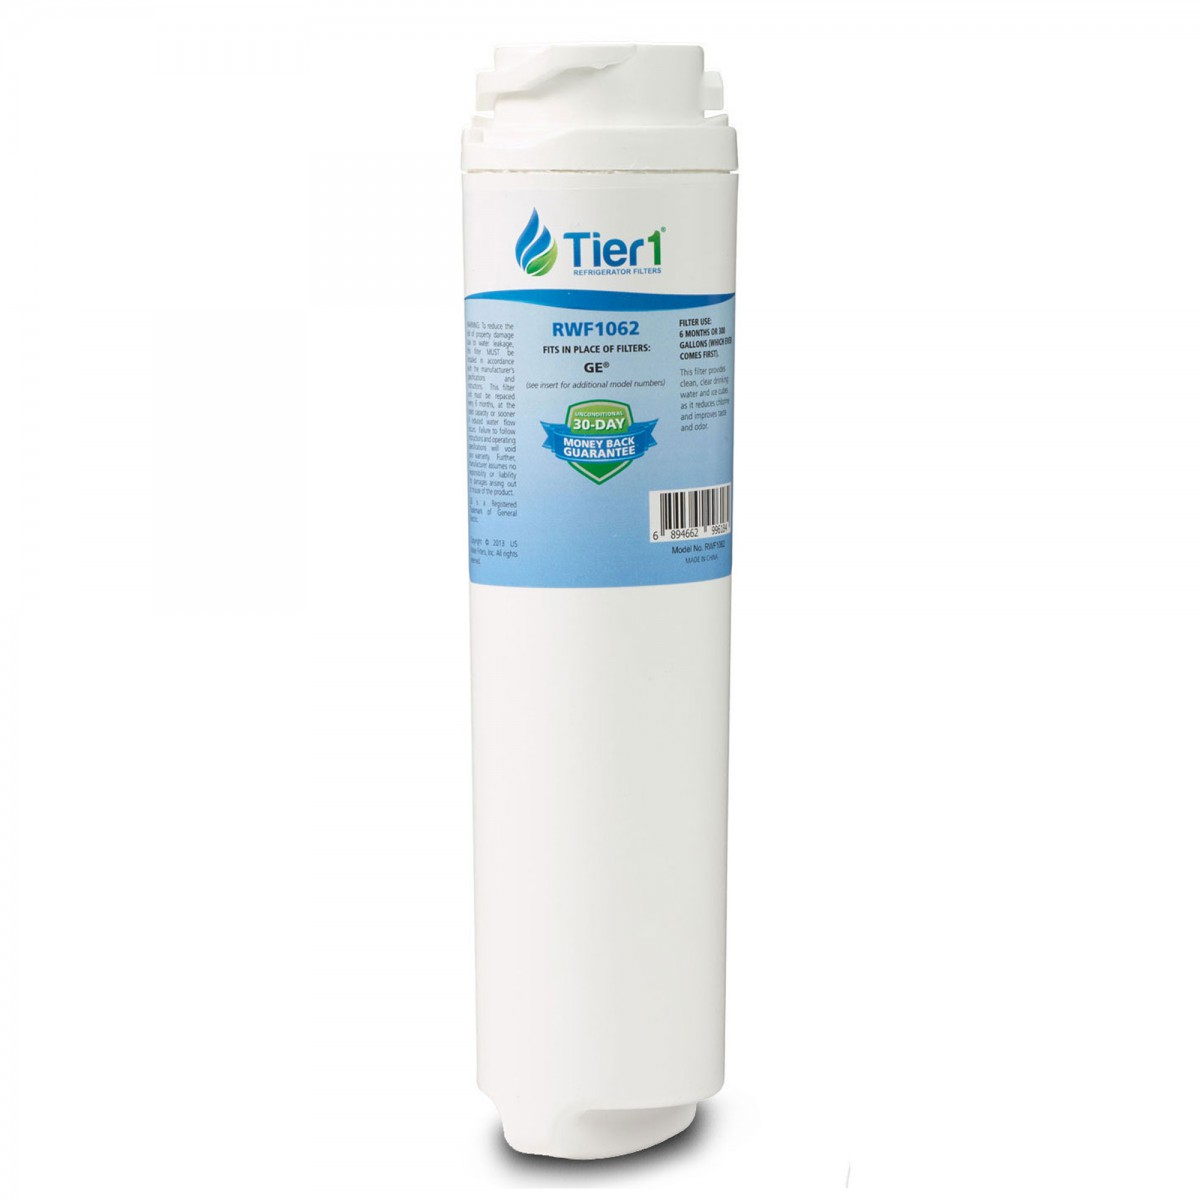 Smart Water Filters Ge Mswf Comparable Smartwater Filter Replacement By Tier1